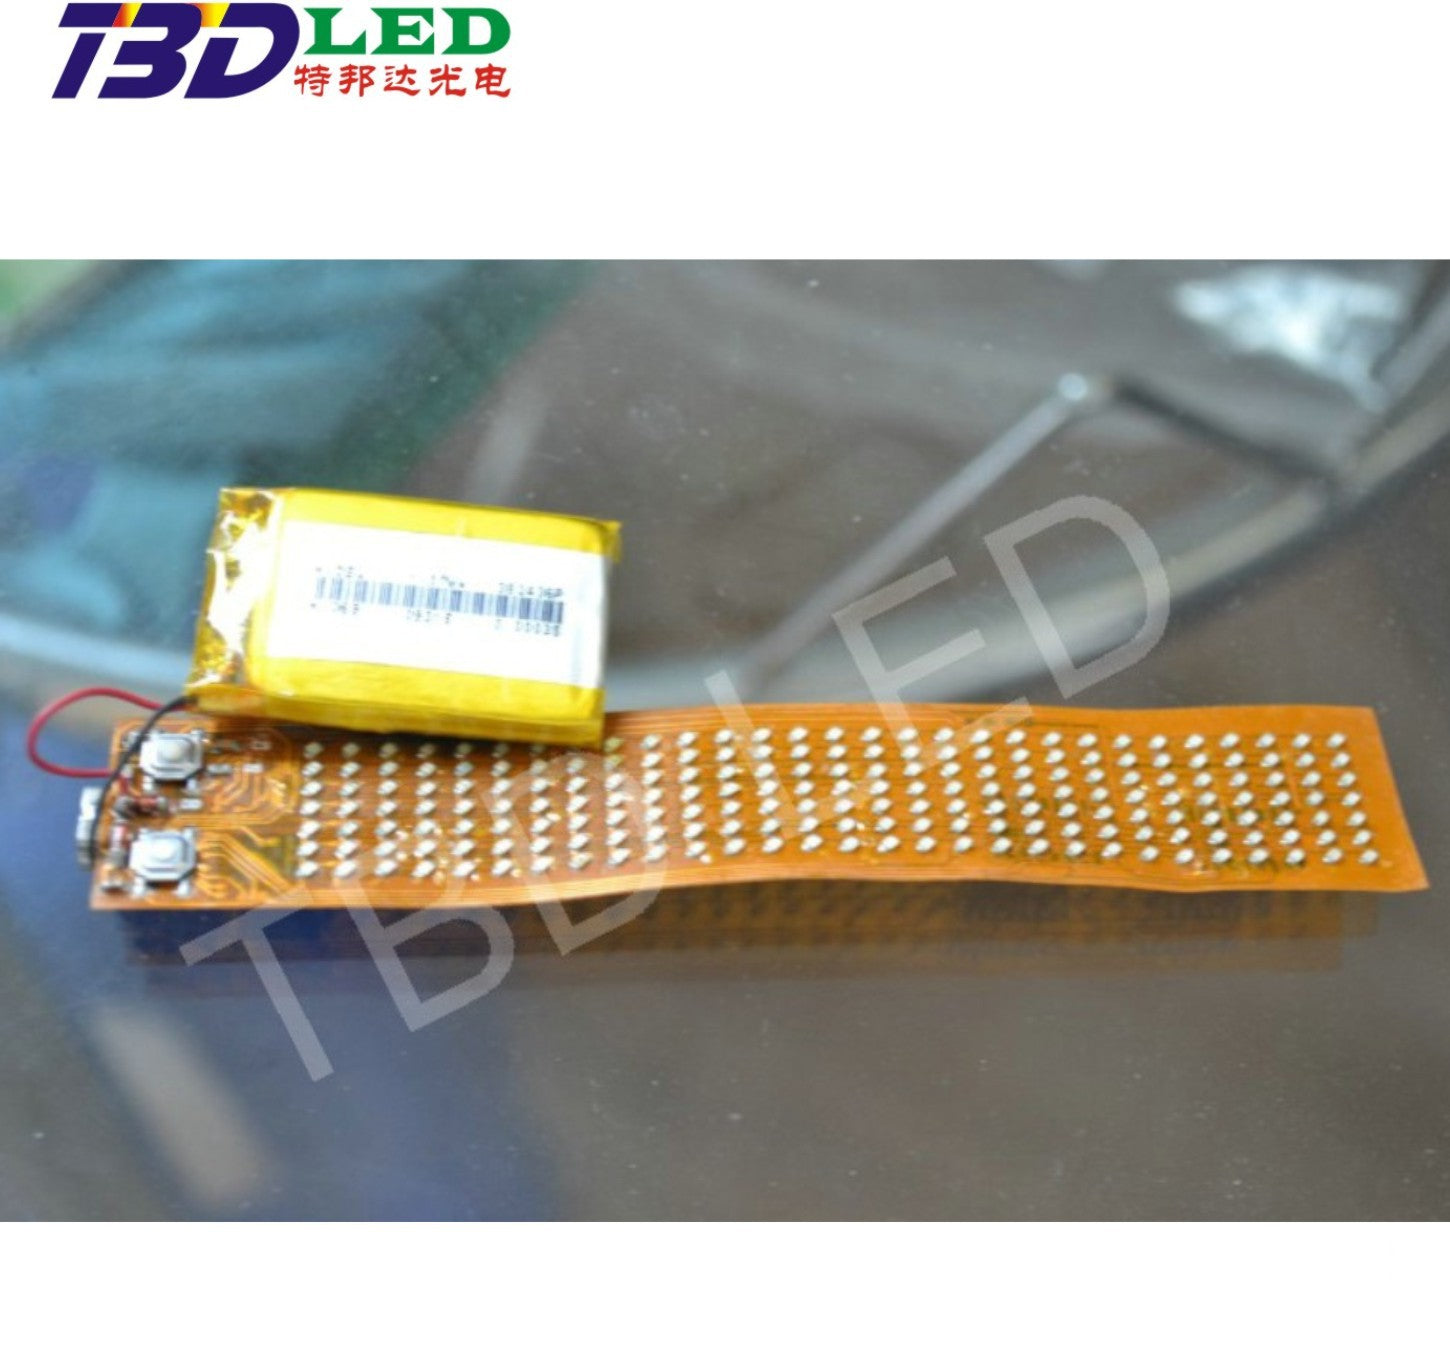 LED desktop screen LED soft board display LED ranking number LED animal electronic card